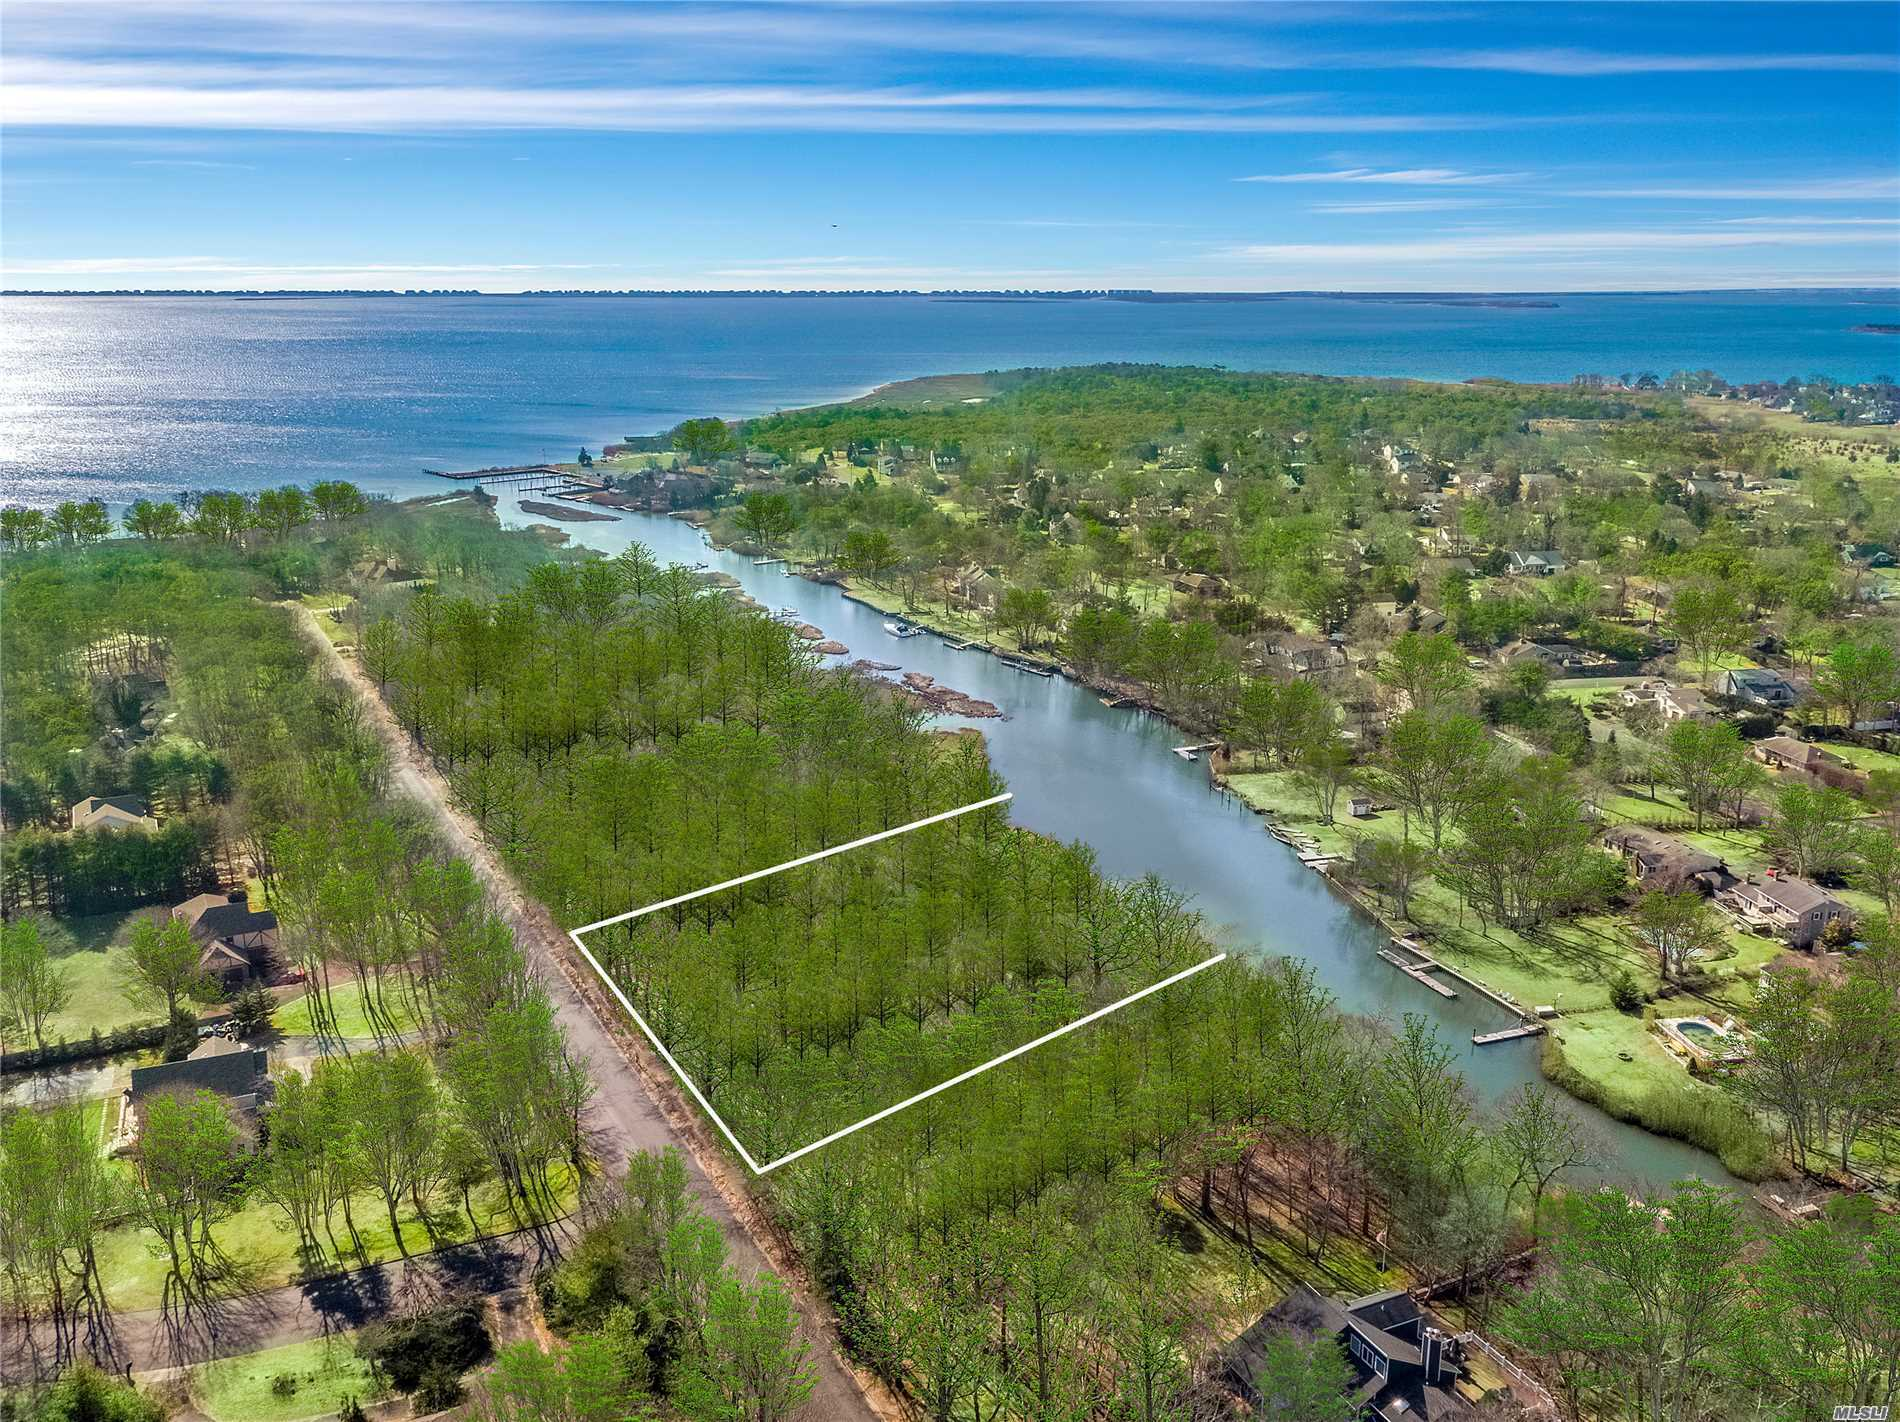 Build your waterfront dream home on this 2-acre wooded, overlooking Mattuck/Heils Creek. Located in the desirable Baywood subdivision in East Moriches, offering the opportunity to build up to a 10, 000 sq.ft. 2 story home with deep water dock. Current permits in place from the NYS DEC. Home owner's association includes private beach & dock access. Call for more information.